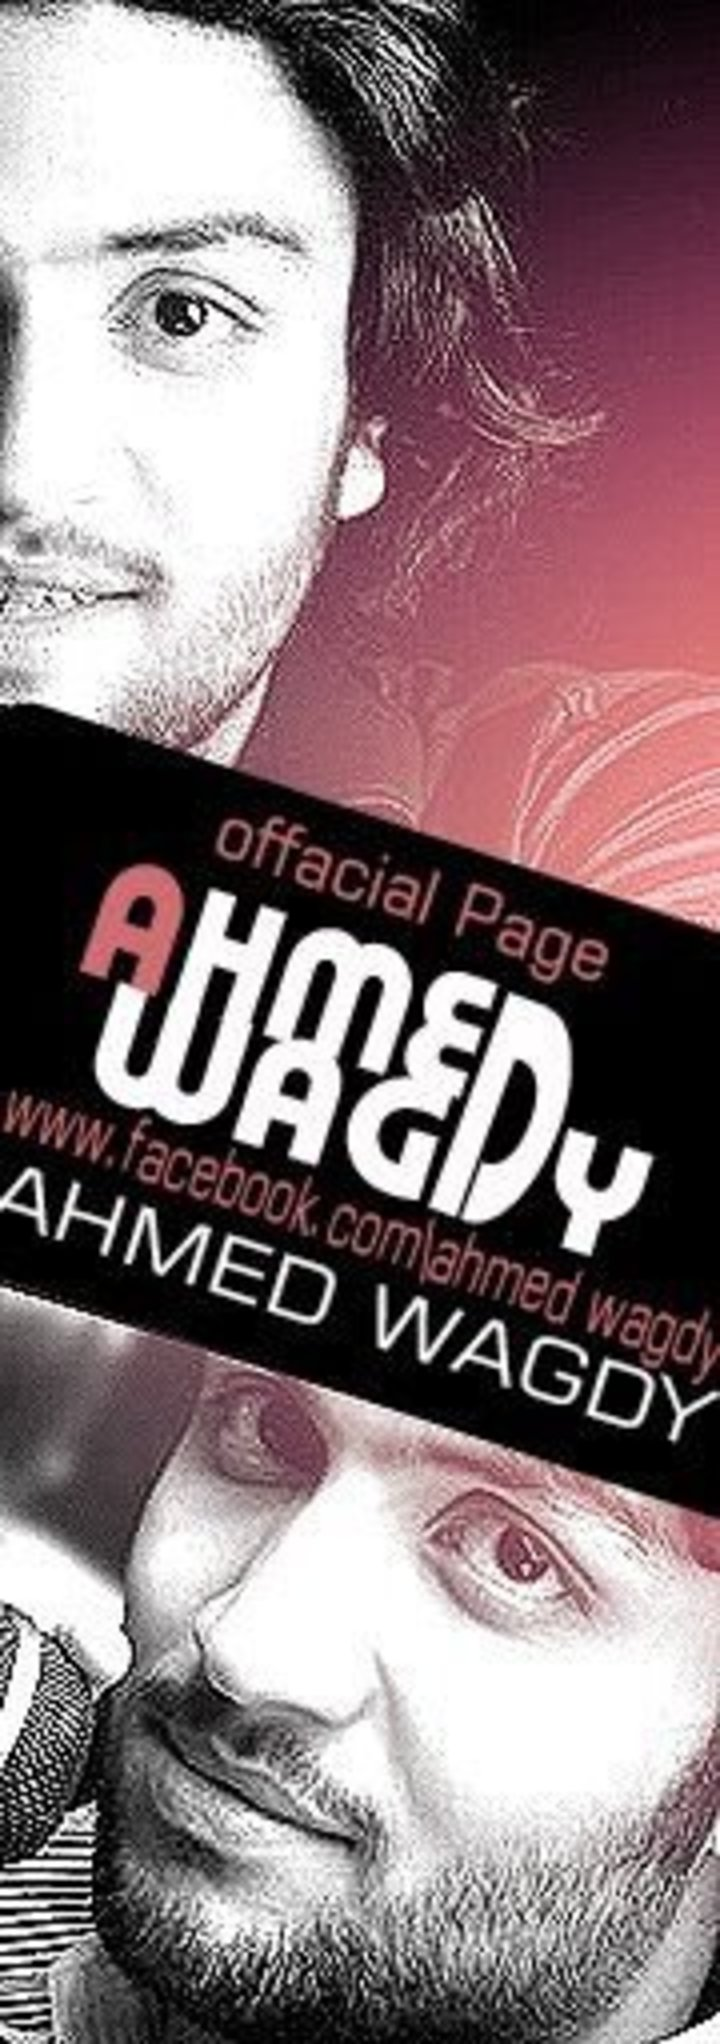 AhmeD WagDy Tour Dates